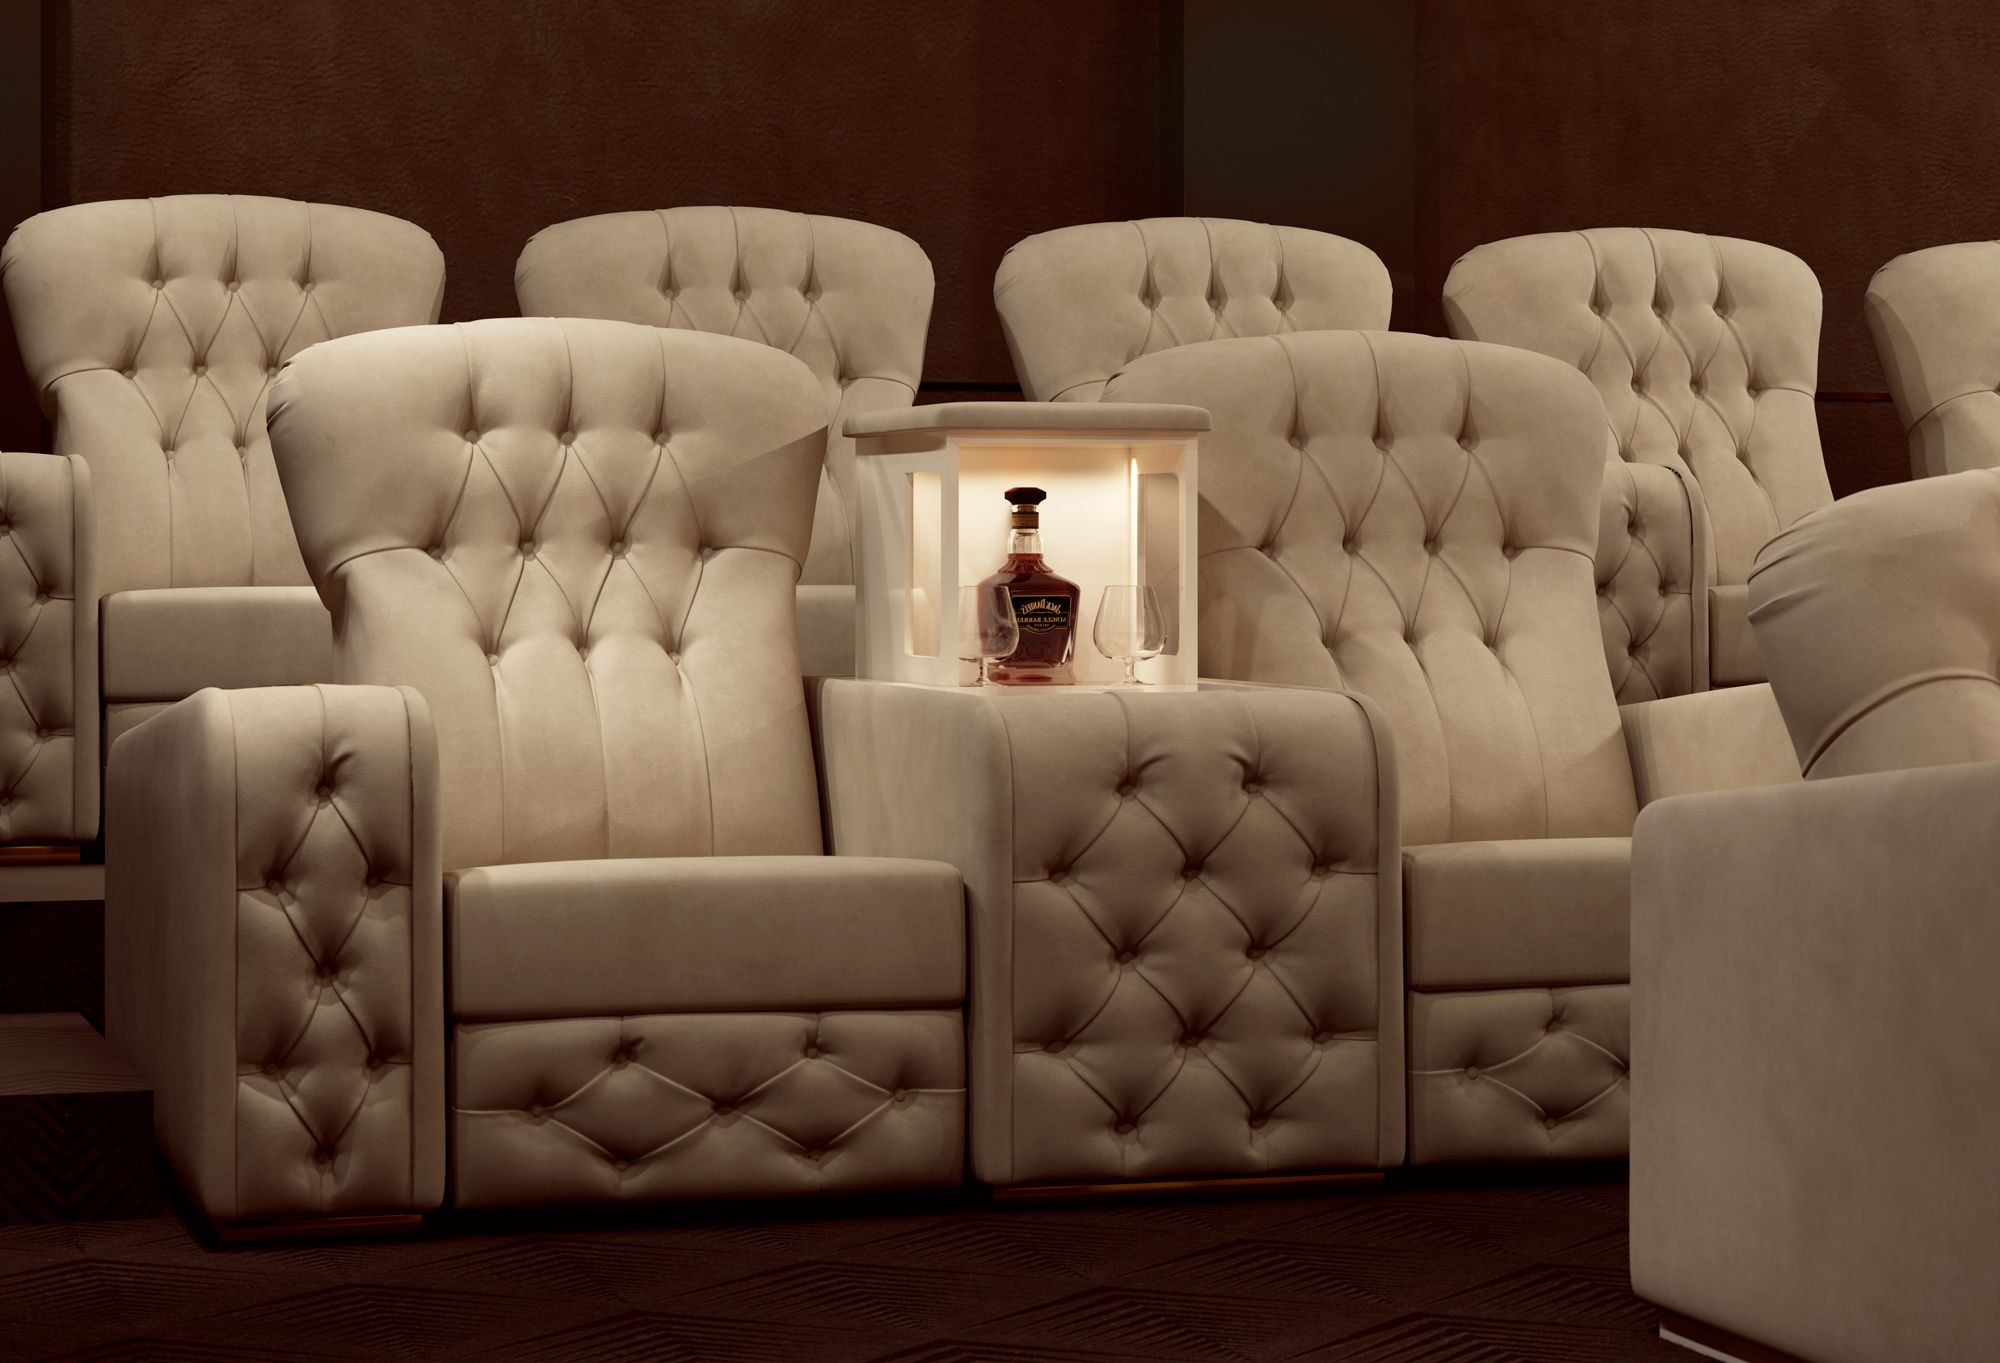 Dramaticatmosphere For A Home Theatre Room Fully Furnished Vismara  # Deco Table Tele Plus Homecimema